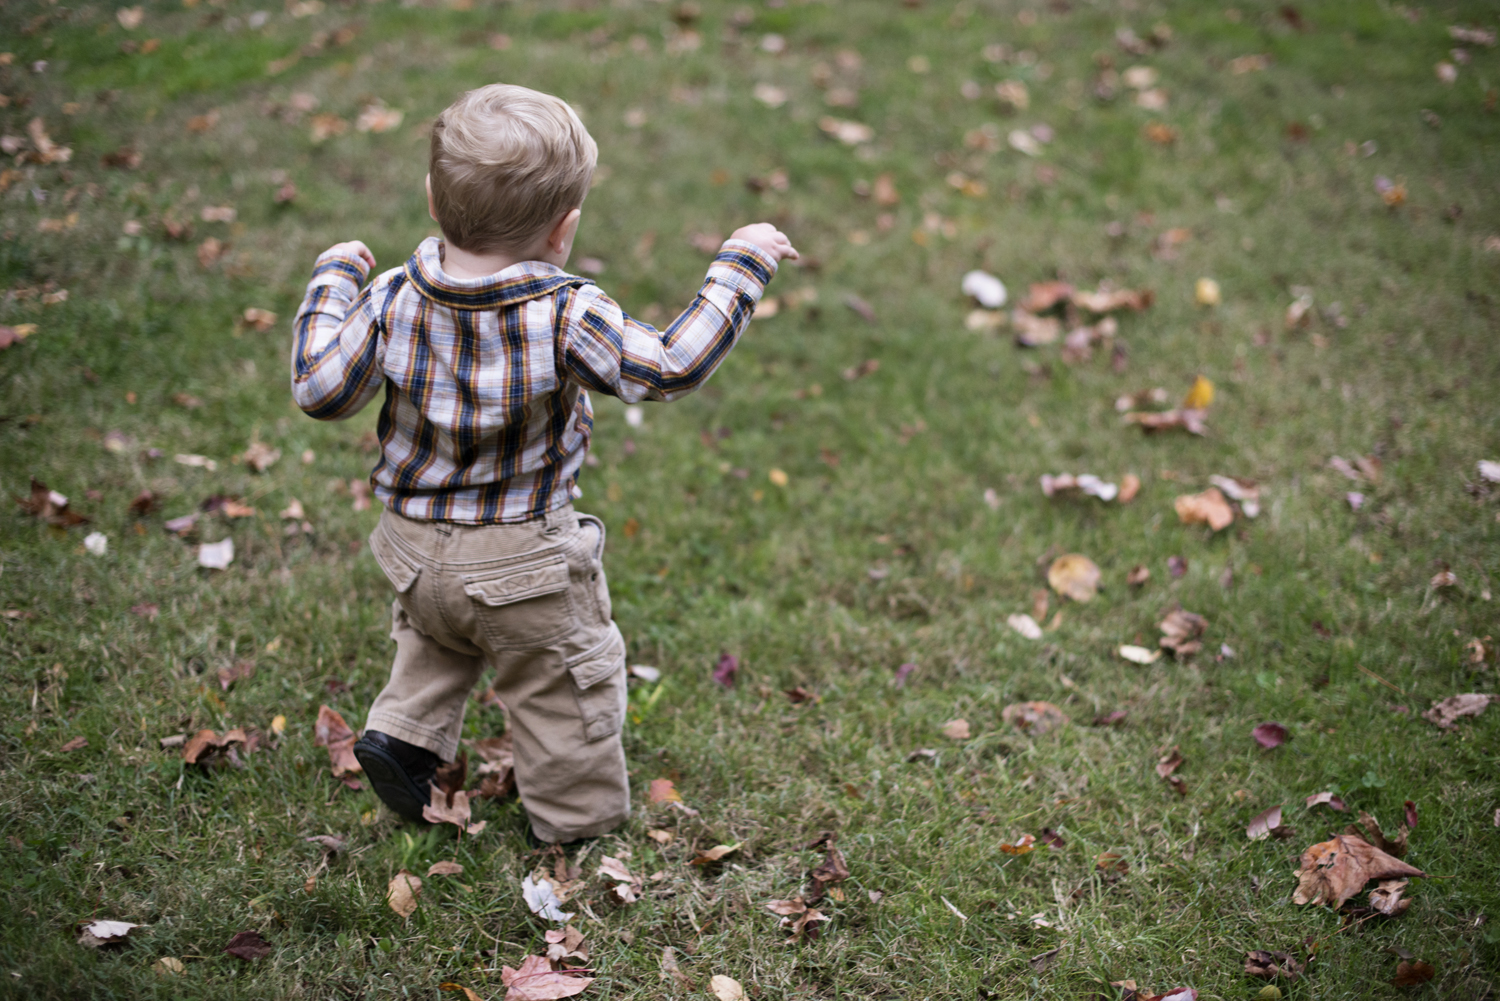 Outfit ideas for toddlers for family pictures